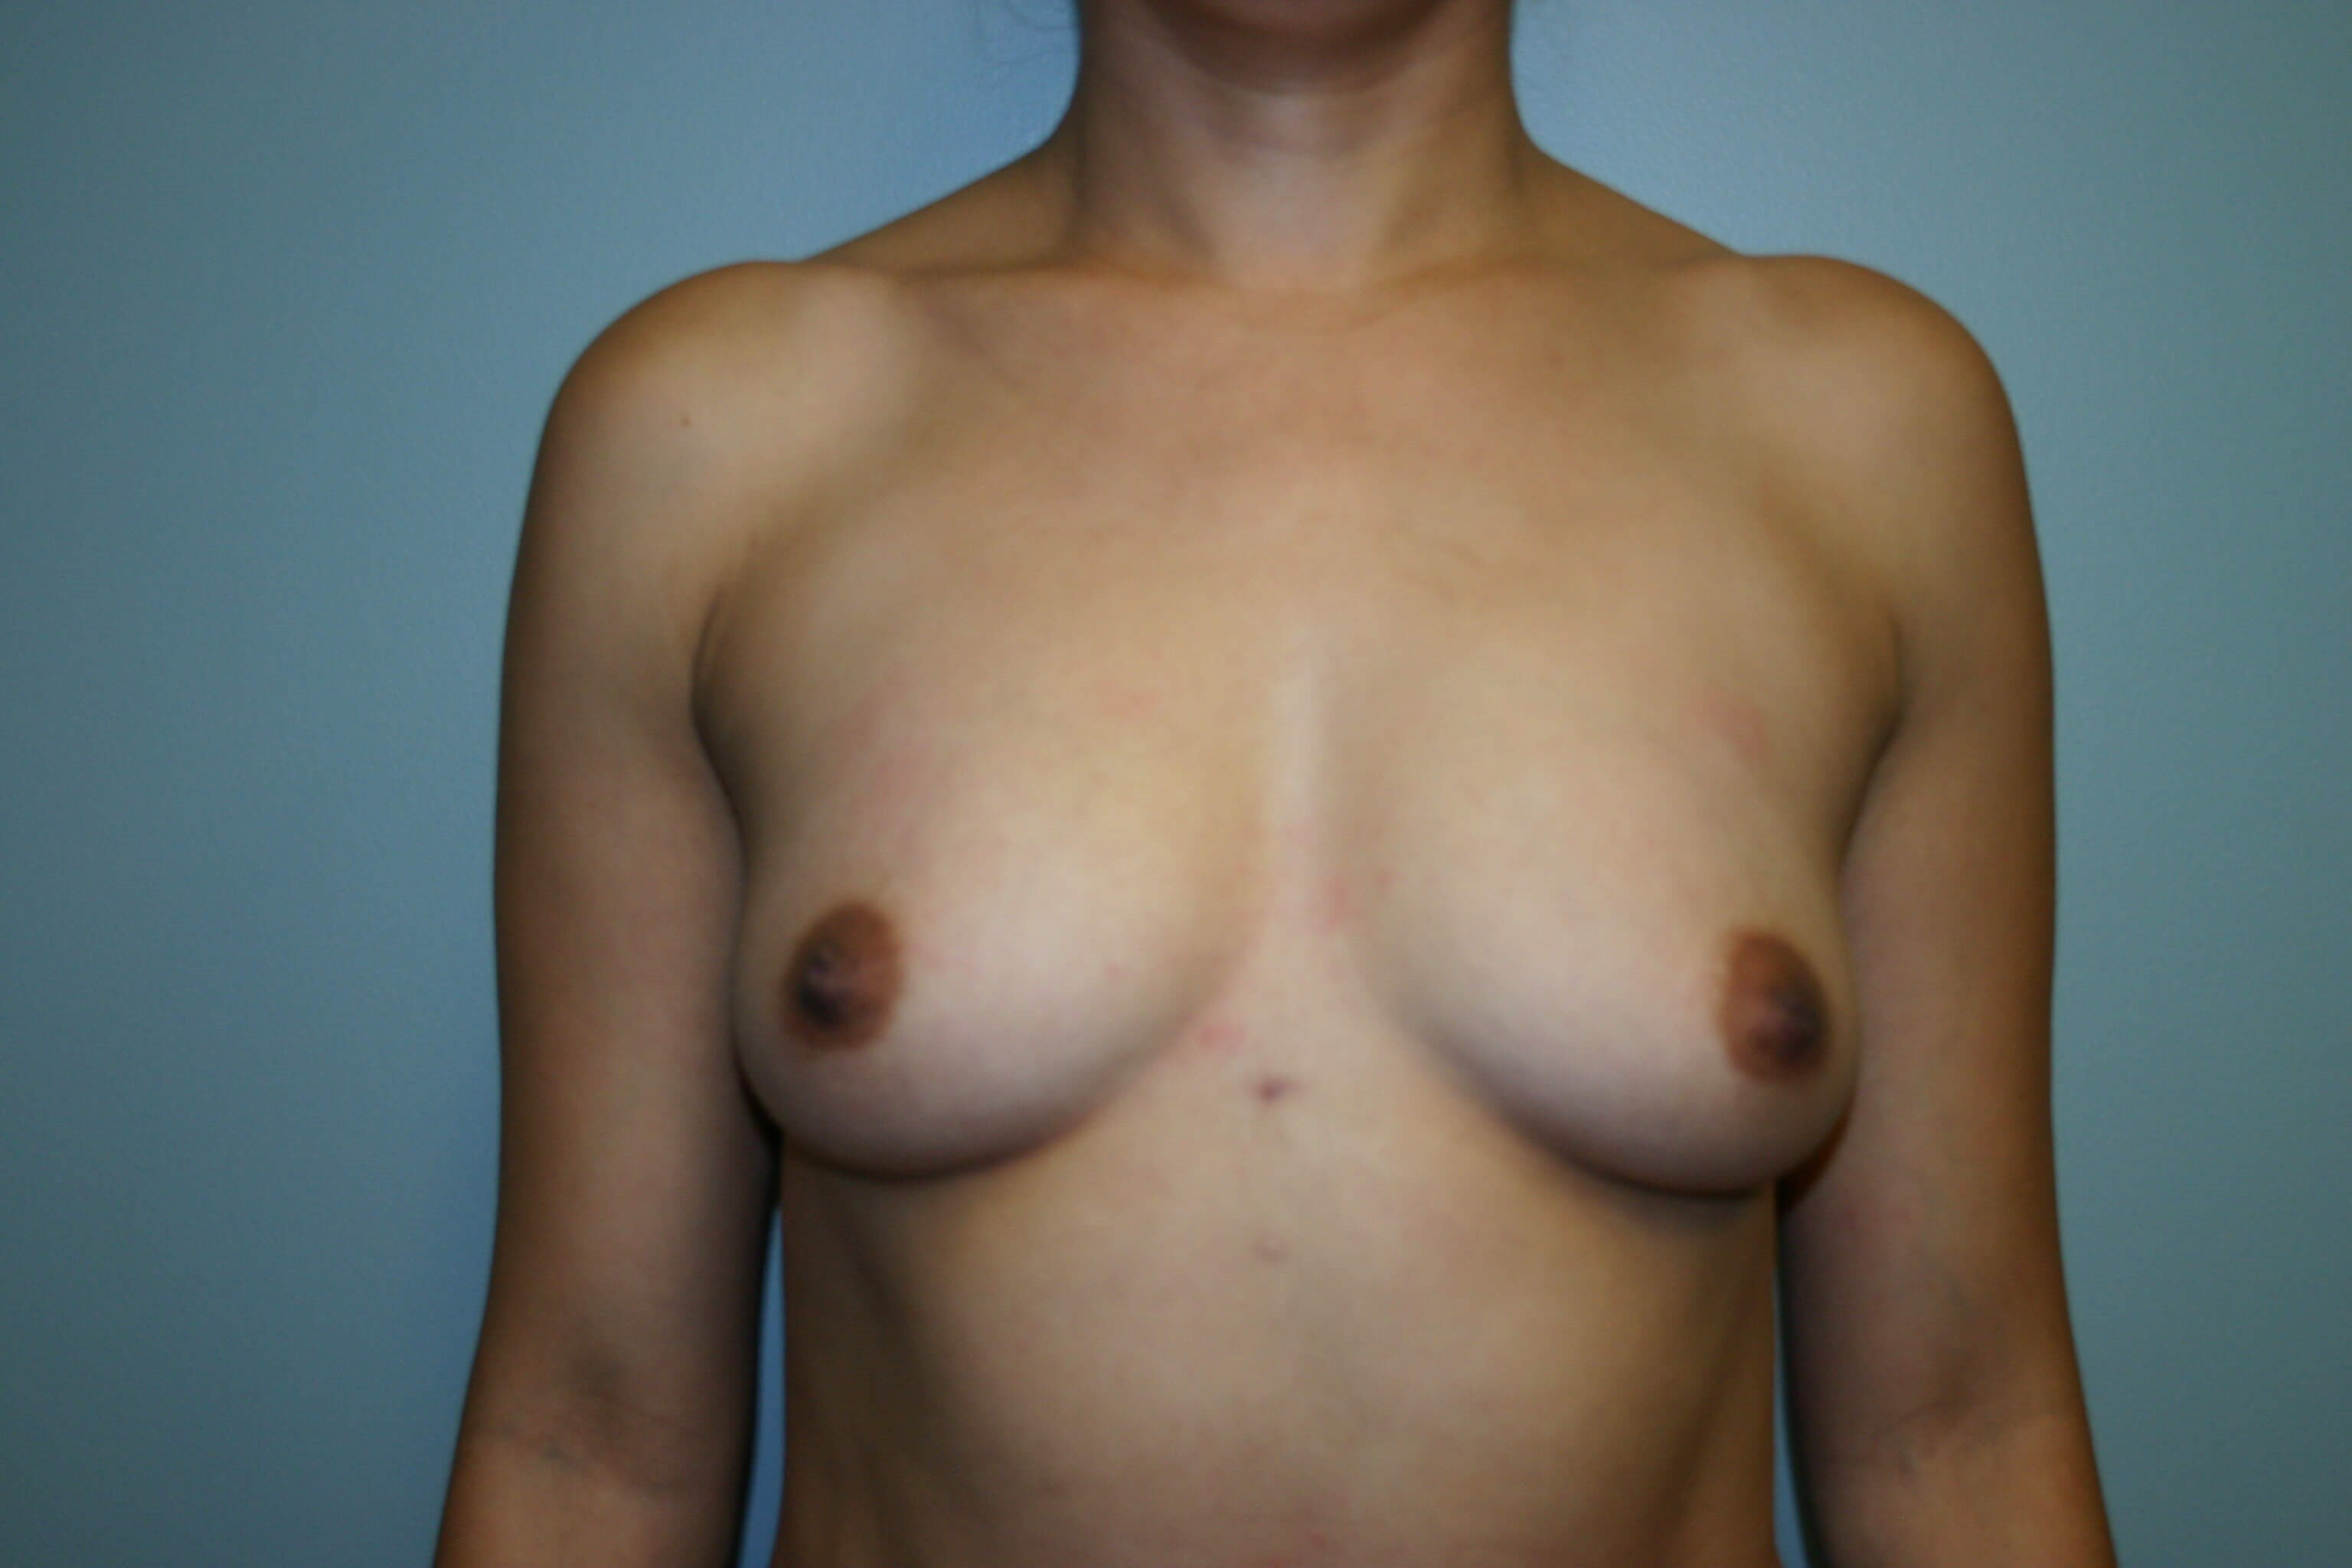 3 Months Post-op Breast Aug Before